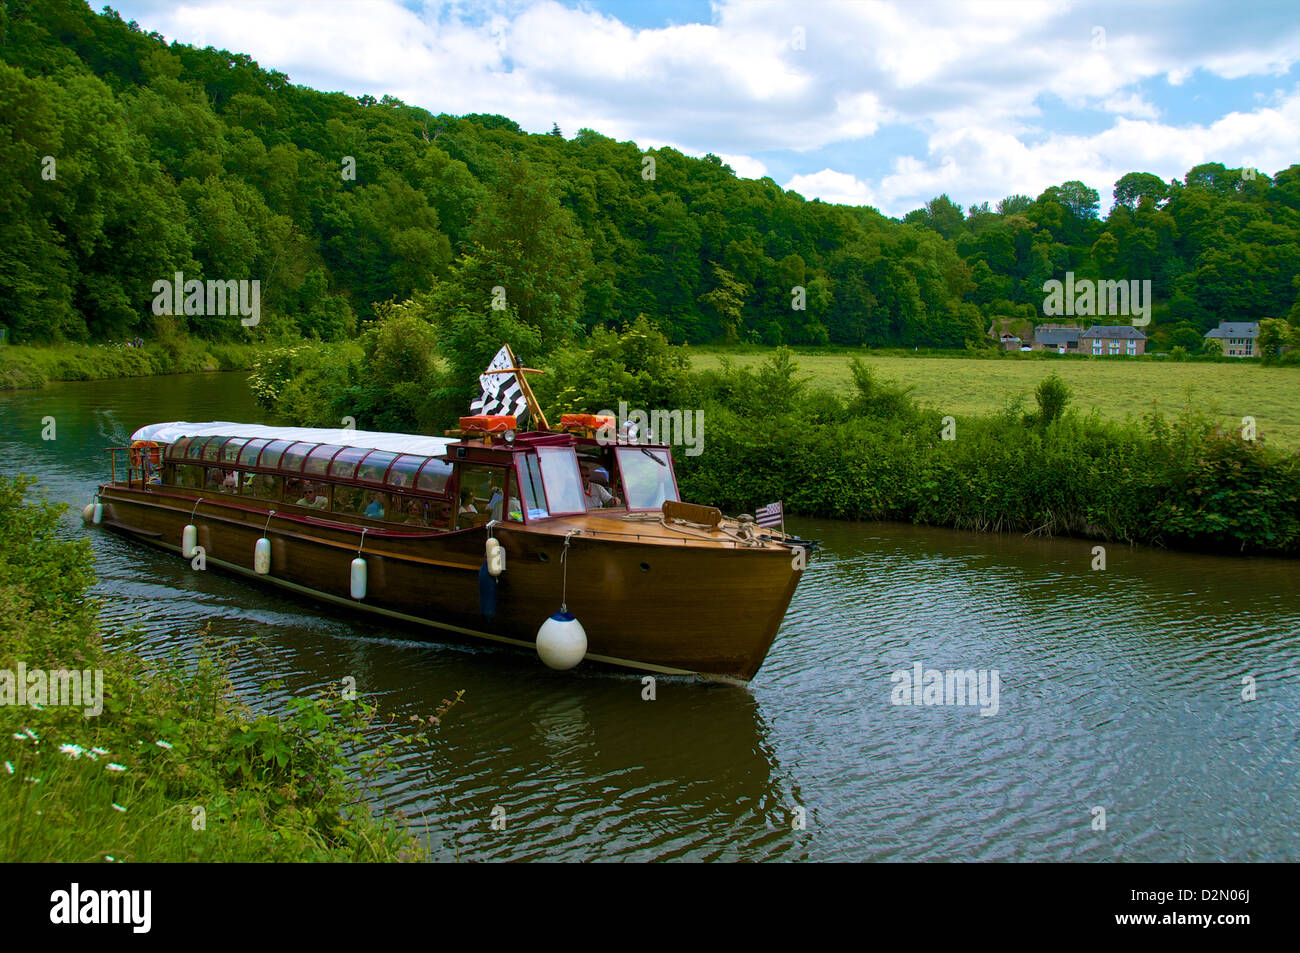 Tourist boat on River Rance, Dinan, Brittany, France, Europe - Stock Image